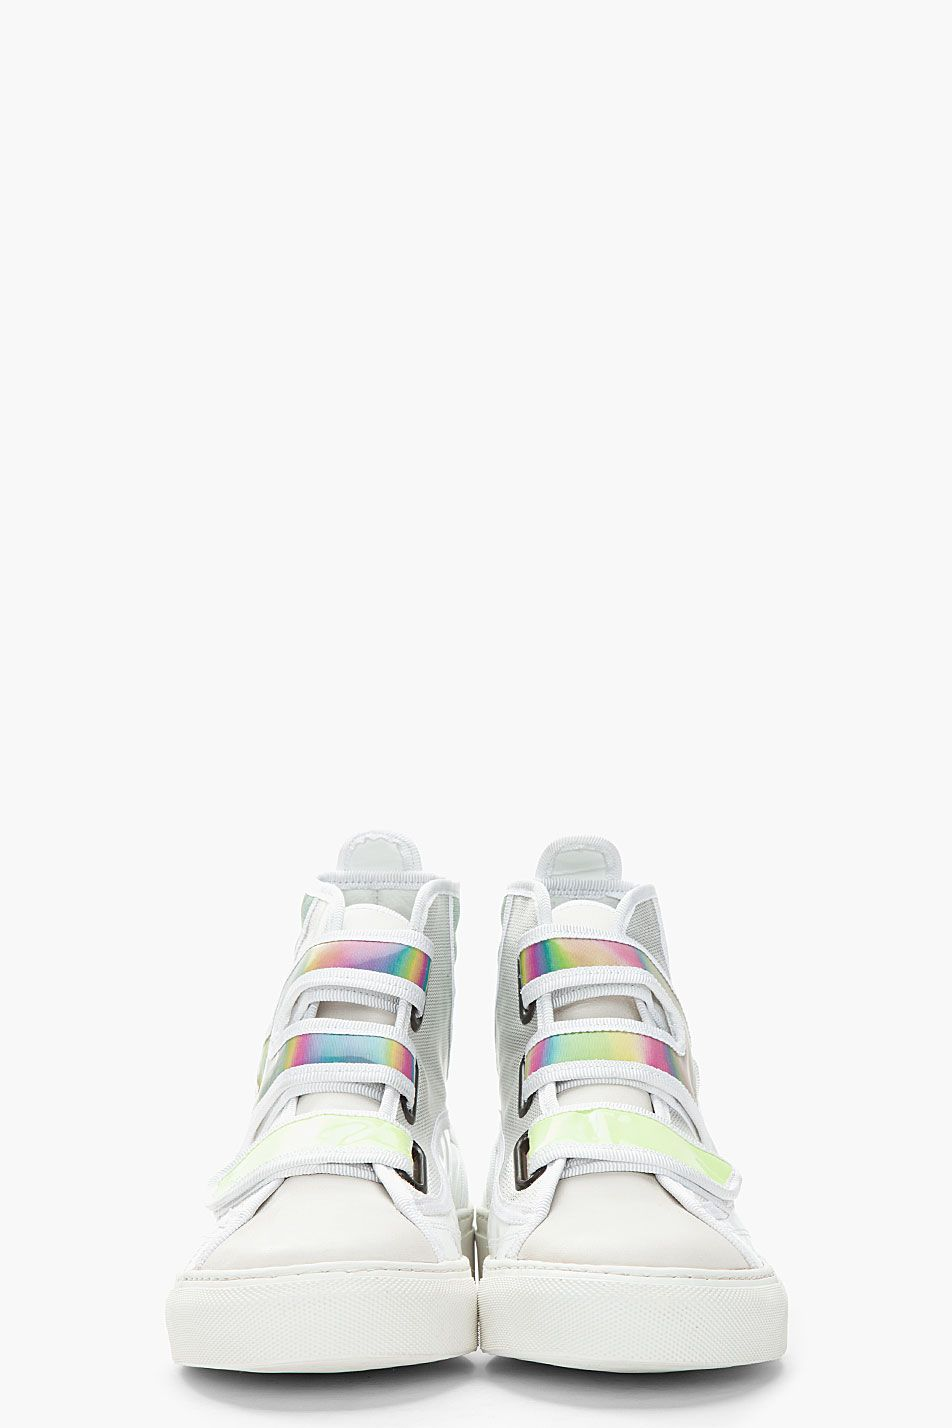 366429367499 RAF SIMONS    WHITE   GREEN HOLOGRAPHIC VELCRO HIGH TOP SNEAKERS ...